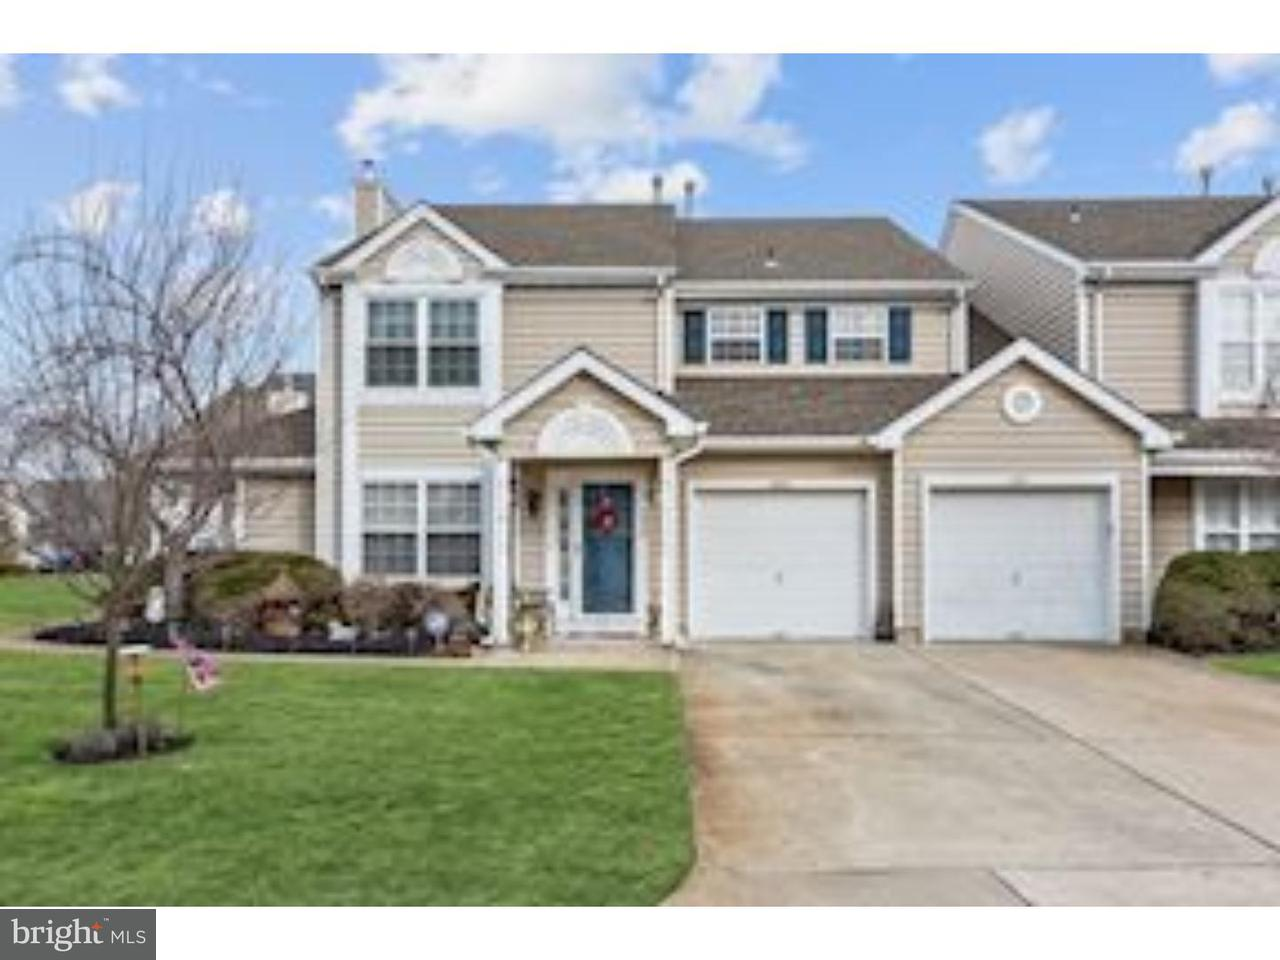 6601  Normandy Mt Laurel, NJ 08054